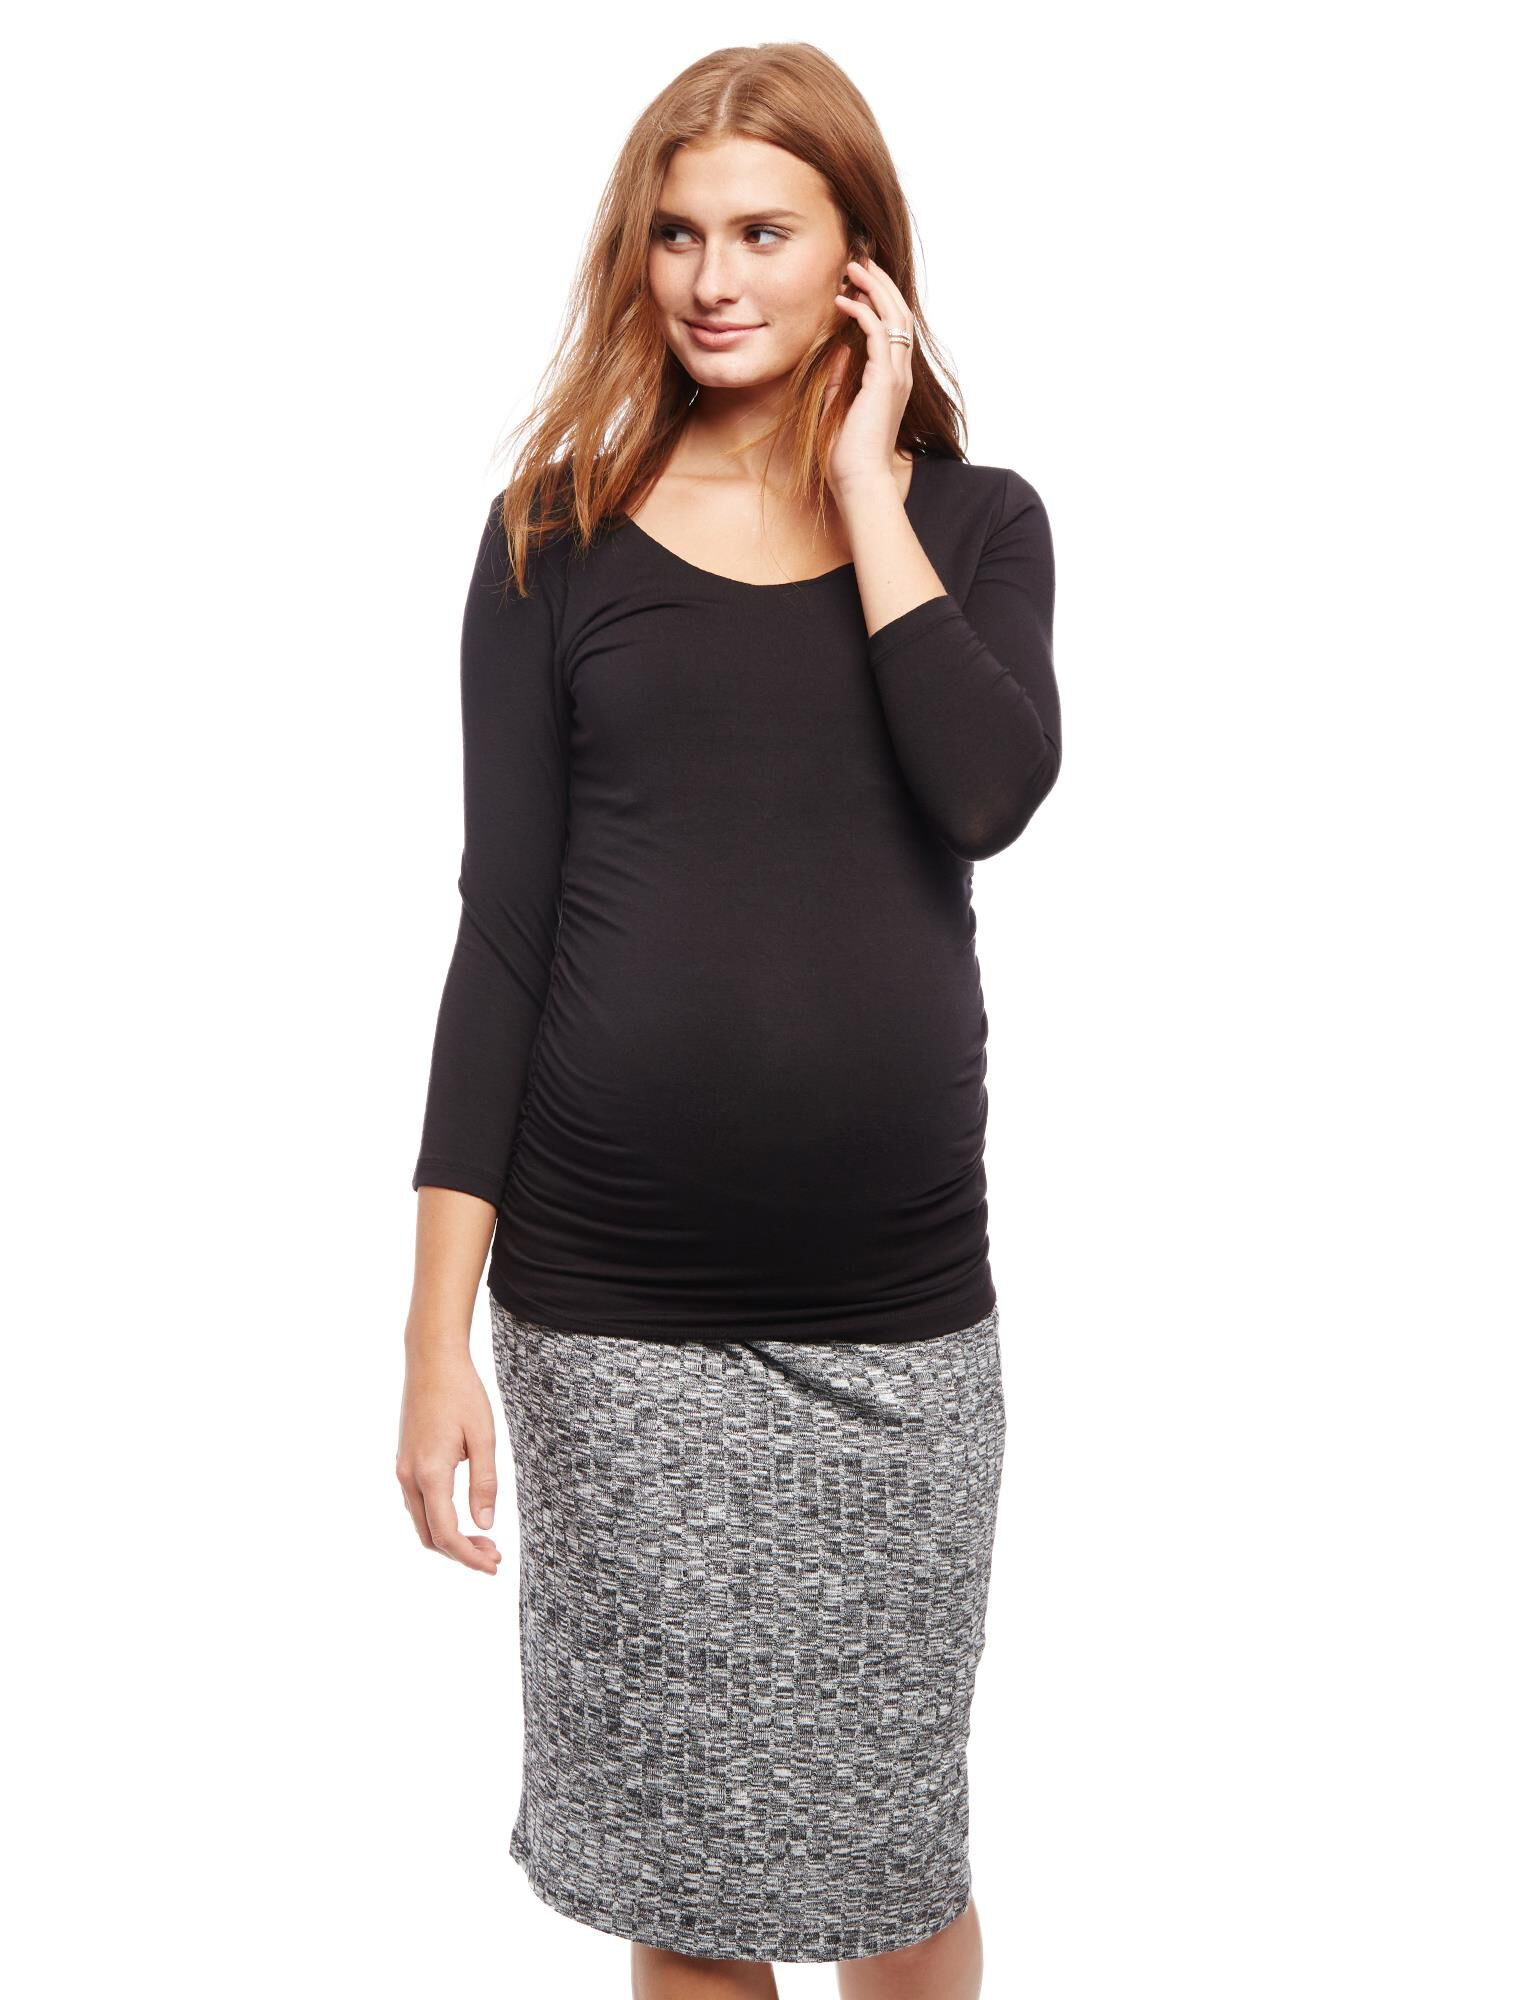 Pull On Style Rib Knit Pencil Maternity Skirt